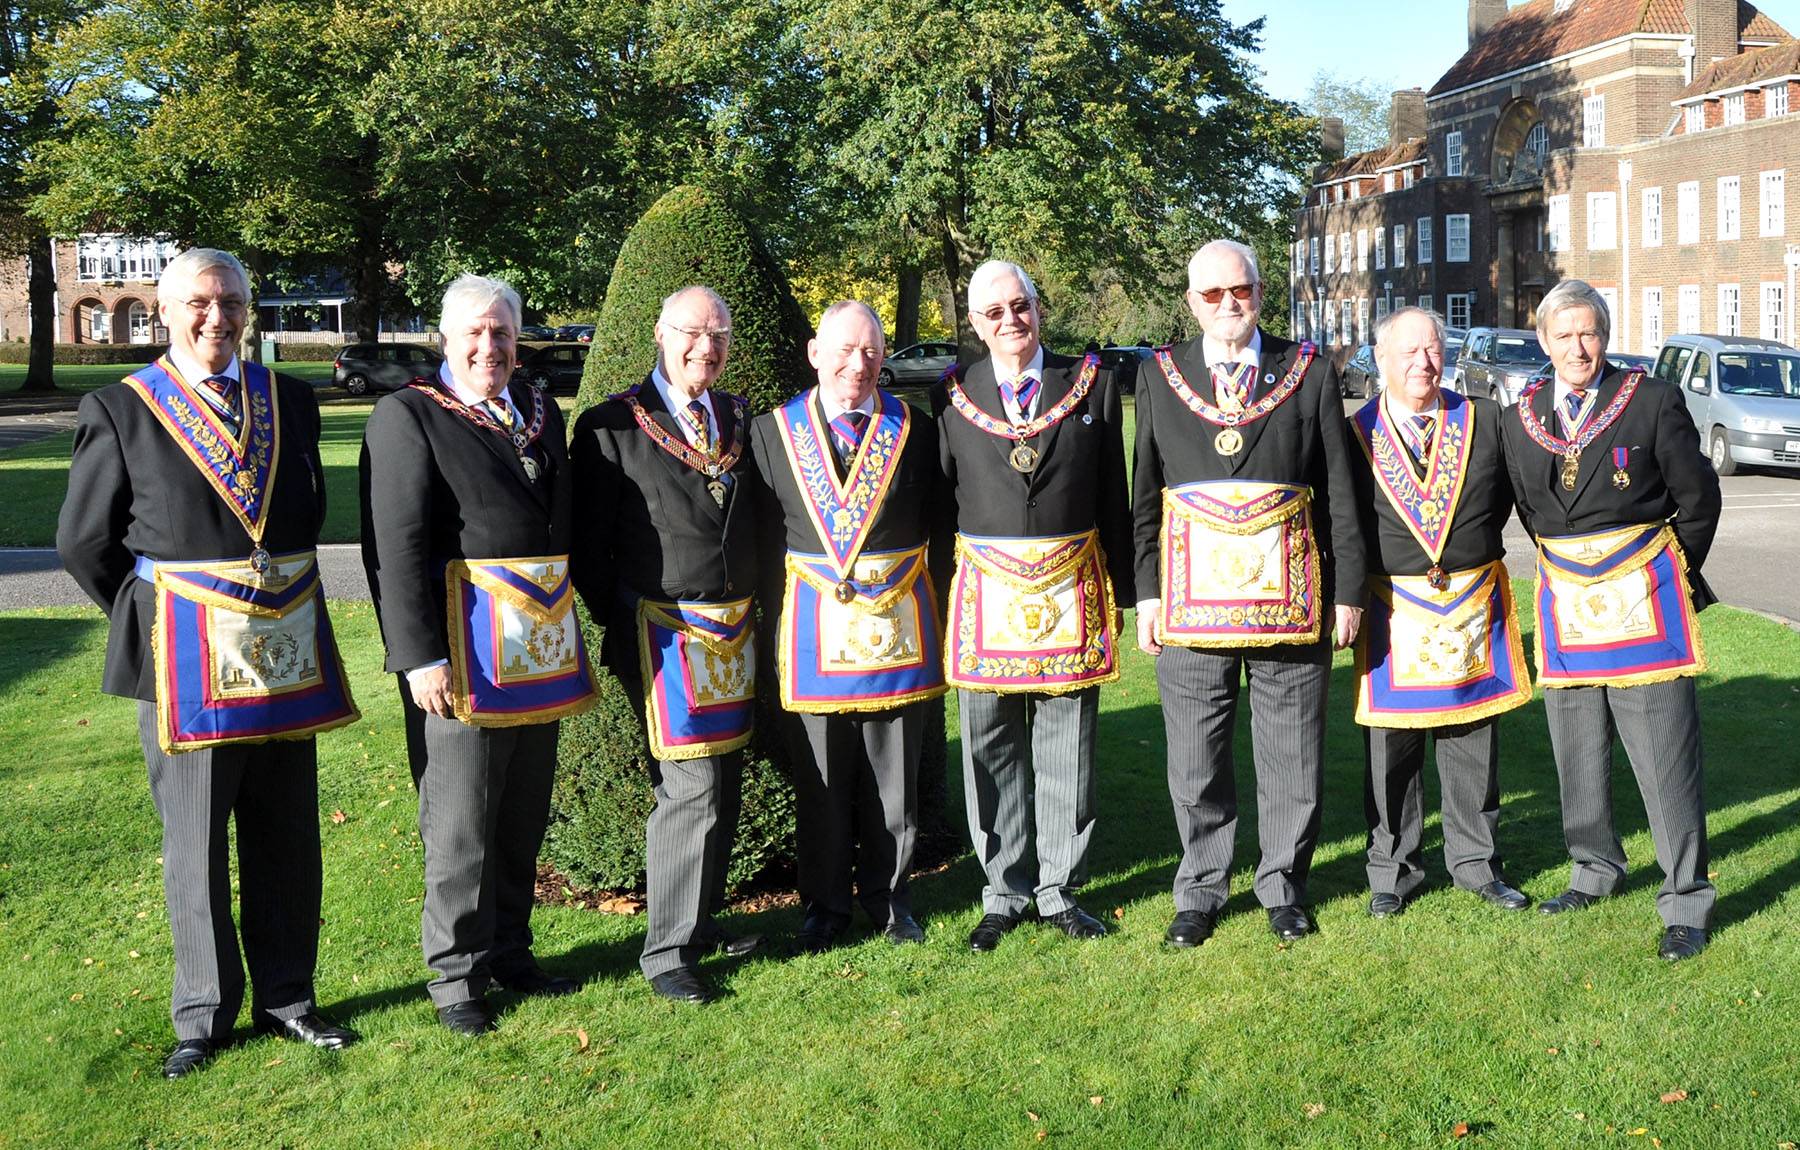 Visit to the Provincial Mark Grand Lodge Of Middlesex